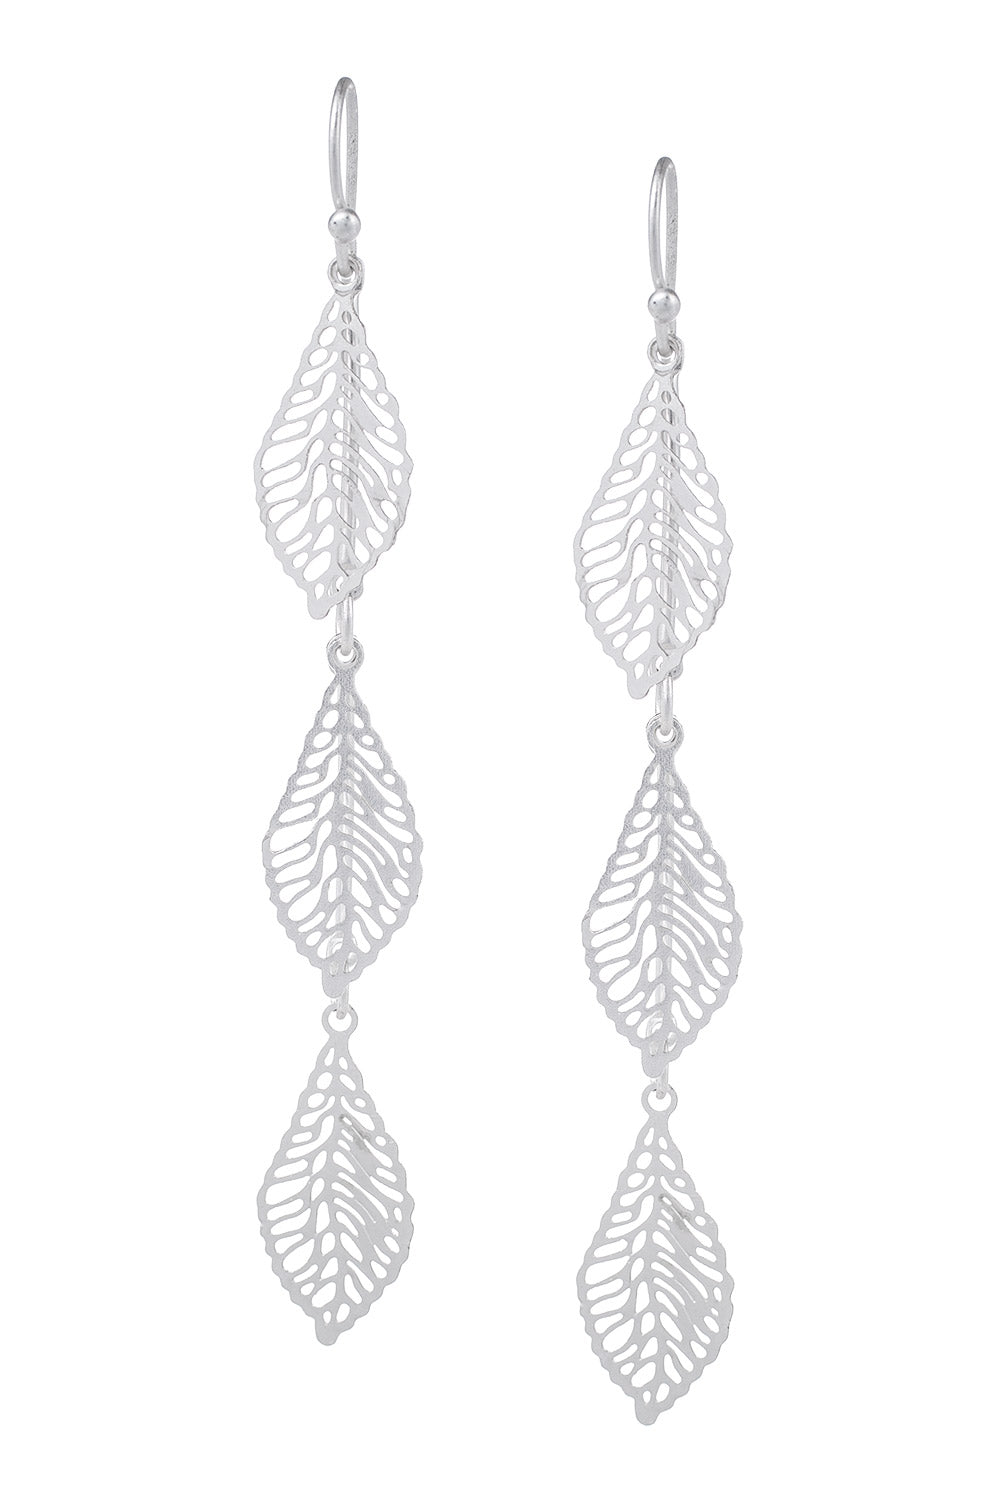 Type 2 Cascading Leaves Earrings